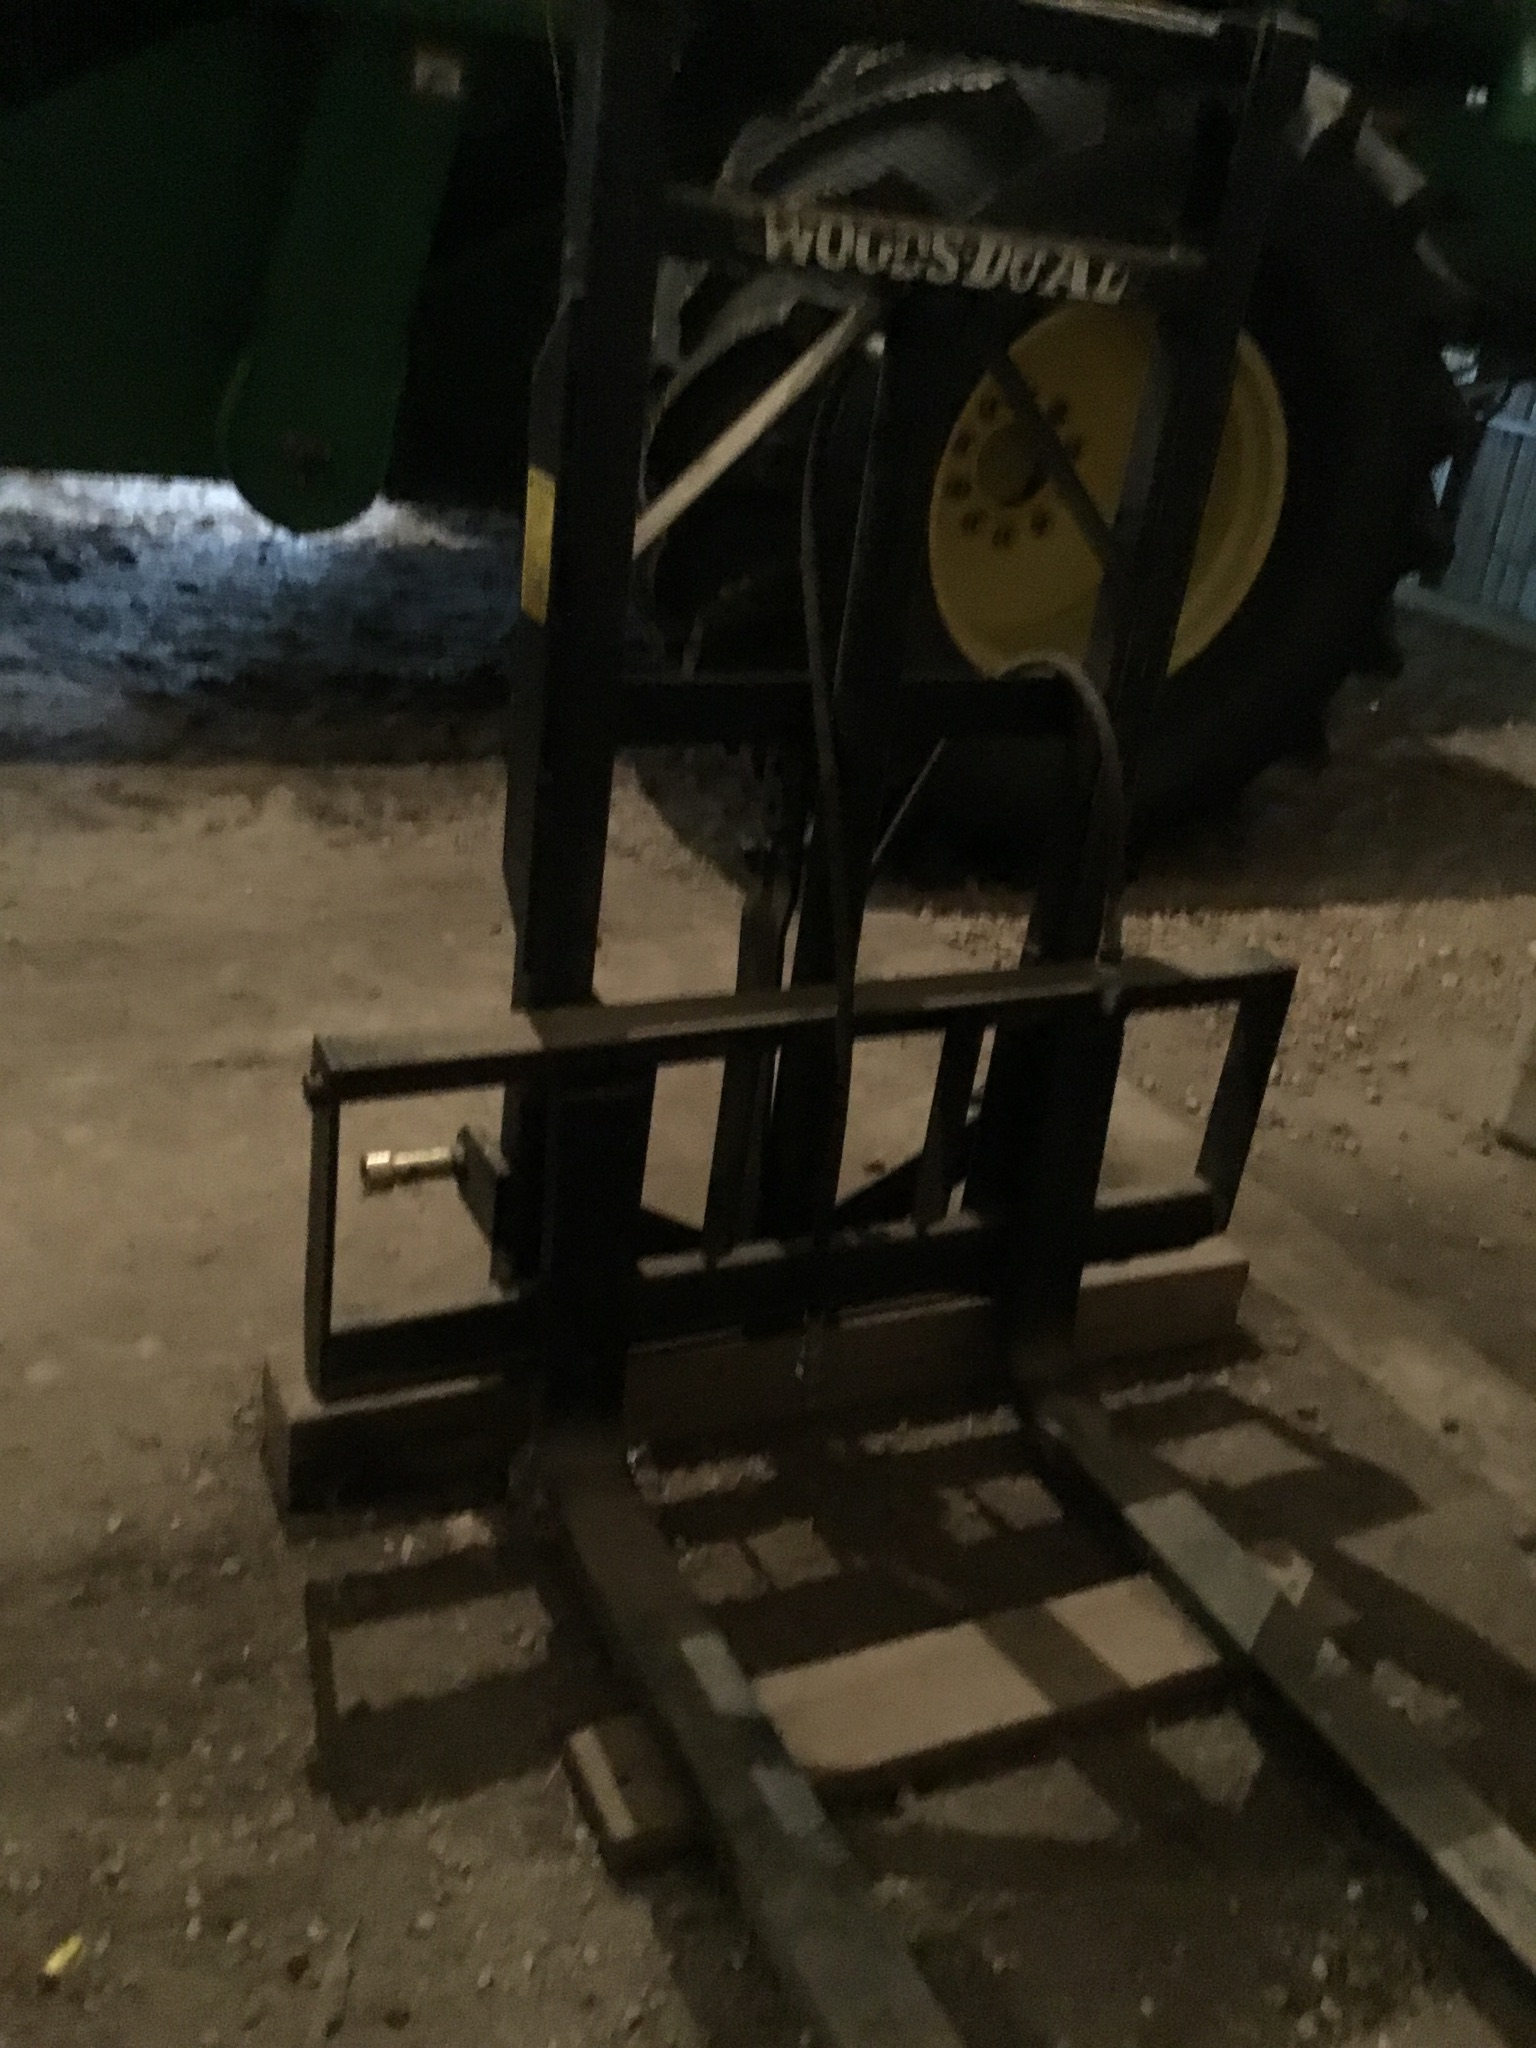 Woods Model 40 3Pt. Hitch Fork Lift 2 Stage, Serial #4560 - Image 2 of 4